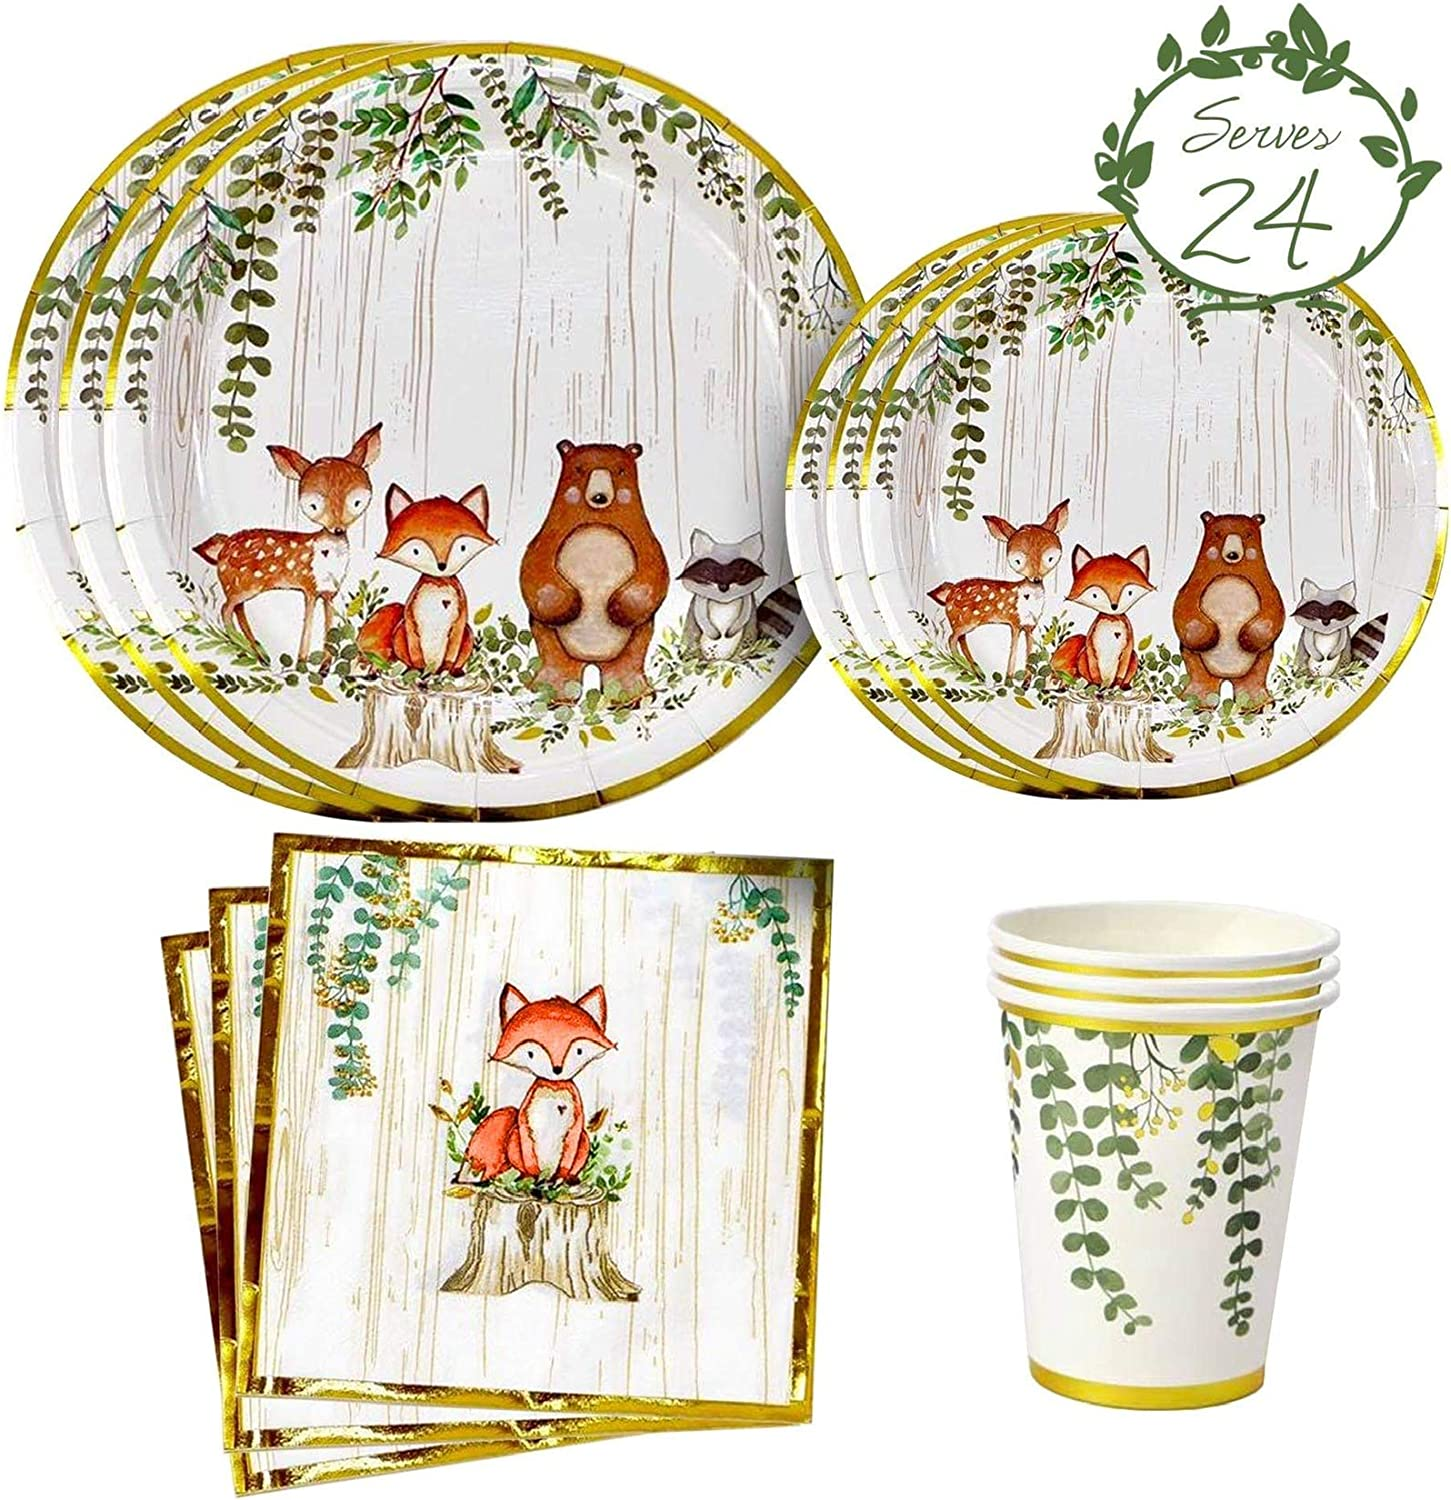 YARA Woodland Creatures Theme Baby Shower & Birthday Party Supplies For Boy or Girl Decorations with plates, napkins and cups of Forest Animal Friends Fox, Deer, Bear, Racoon Tableware Decor Set Serves 24